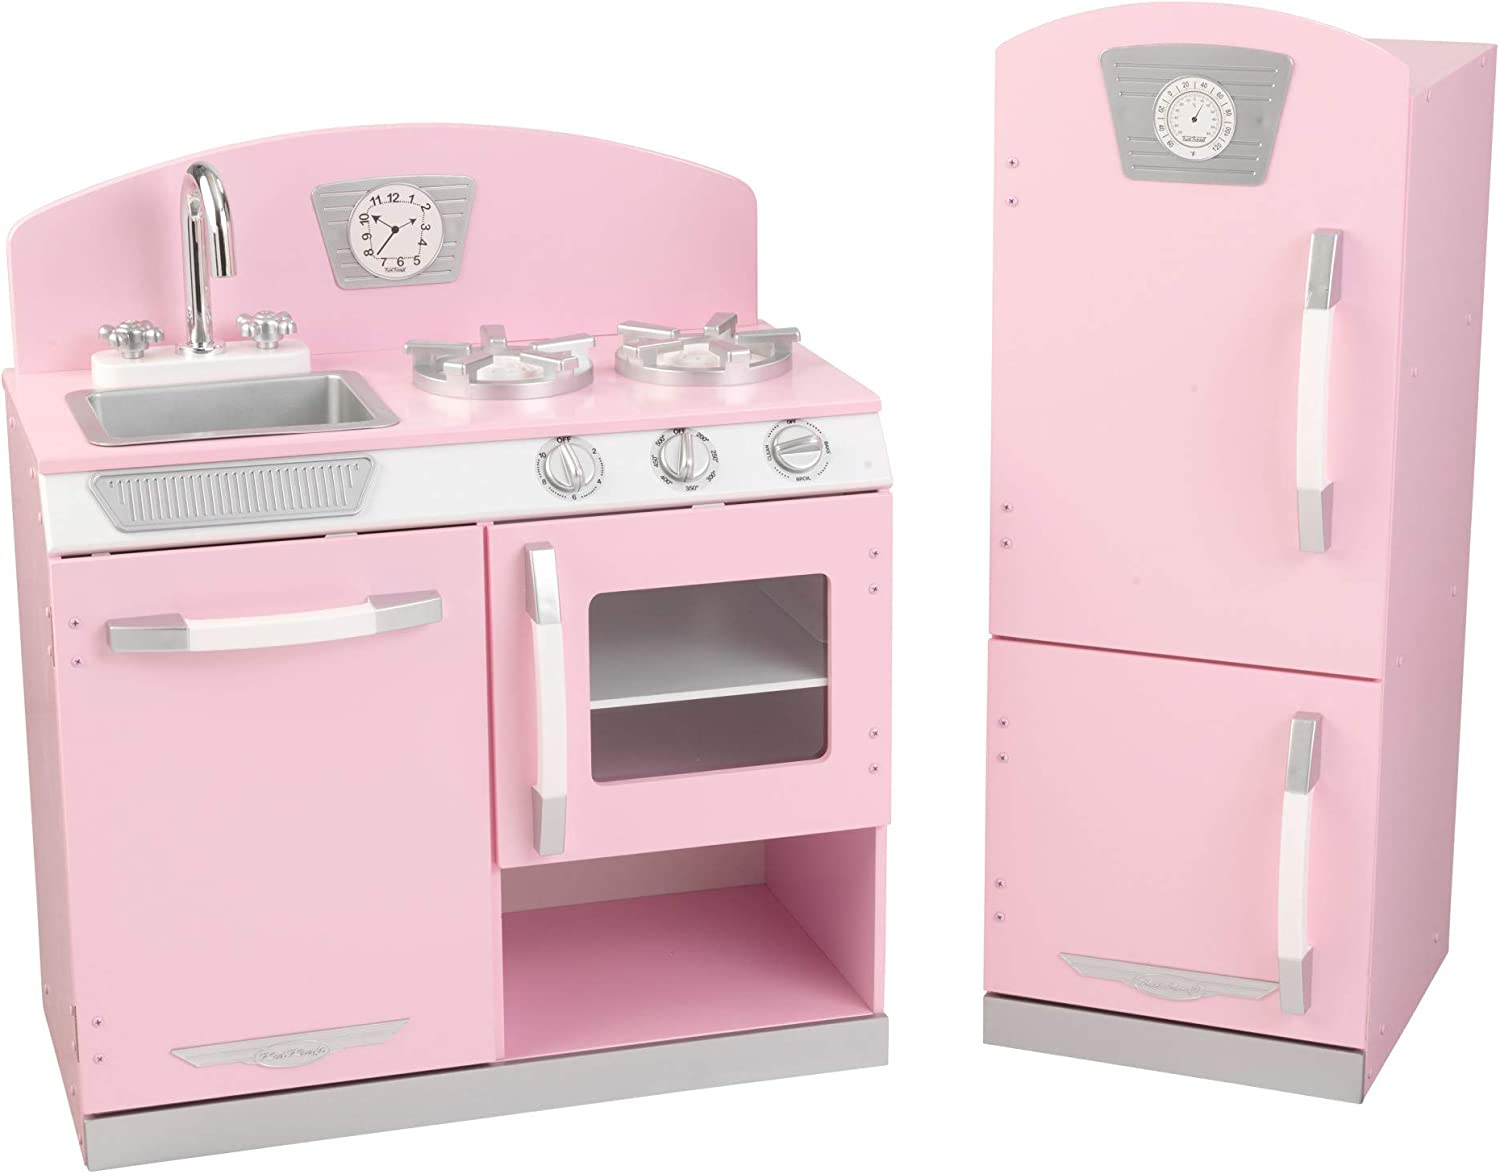 KidKraft Retro Wooden Play Kitchen and Refrigerator Set 2-Piece Topics on TV Cheap mail order specialty store